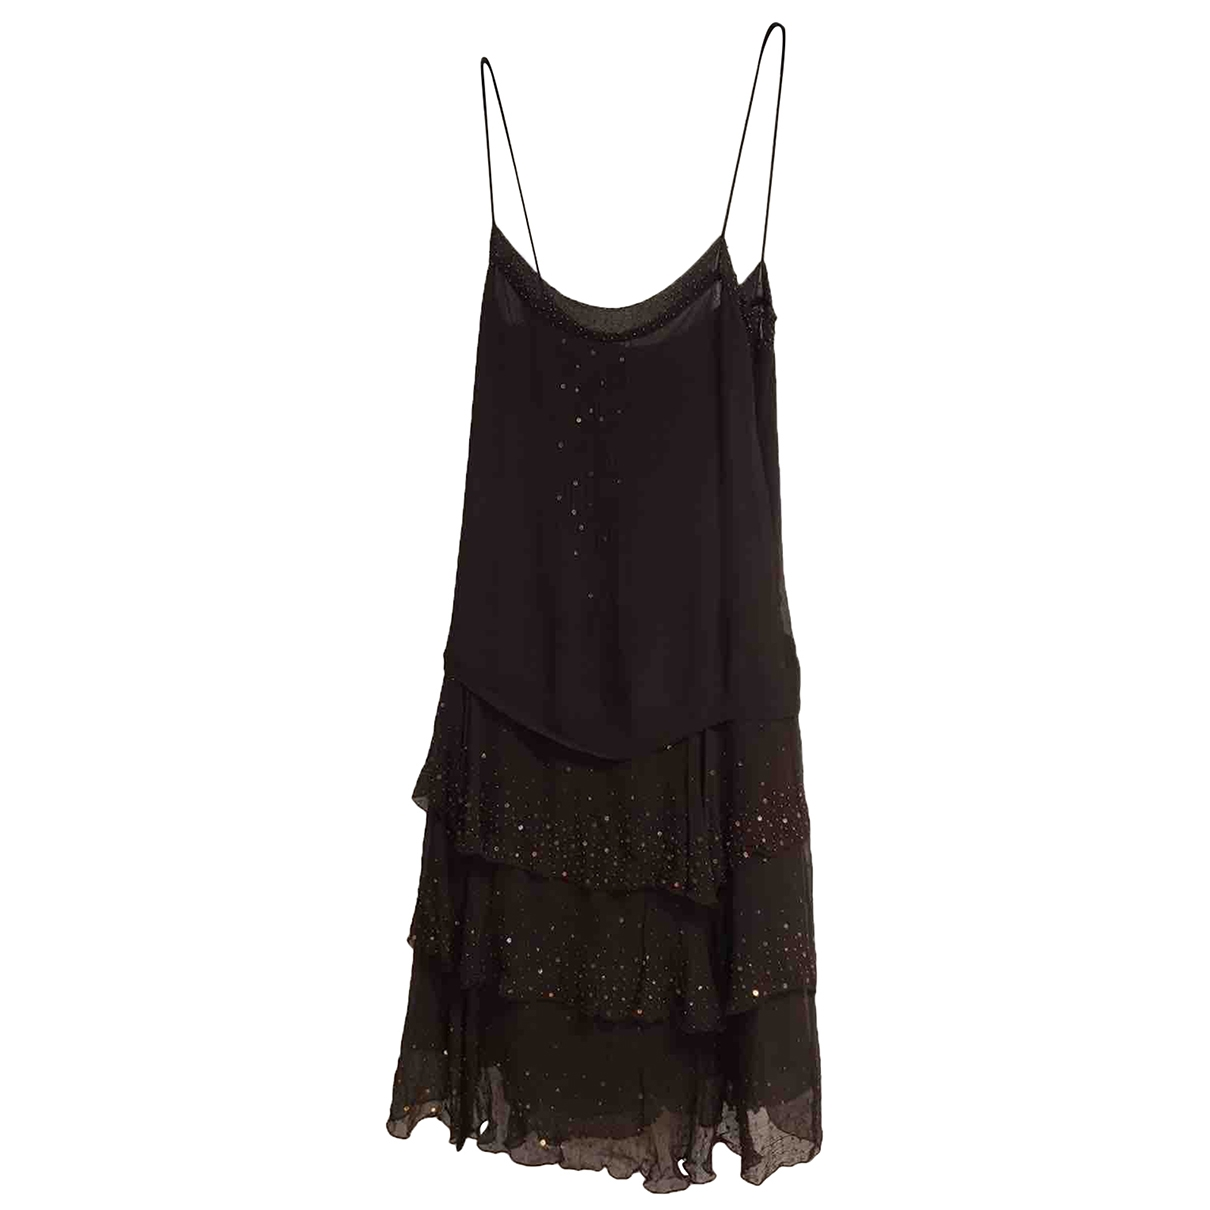 Zara \N Brown Silk dress for Women L International